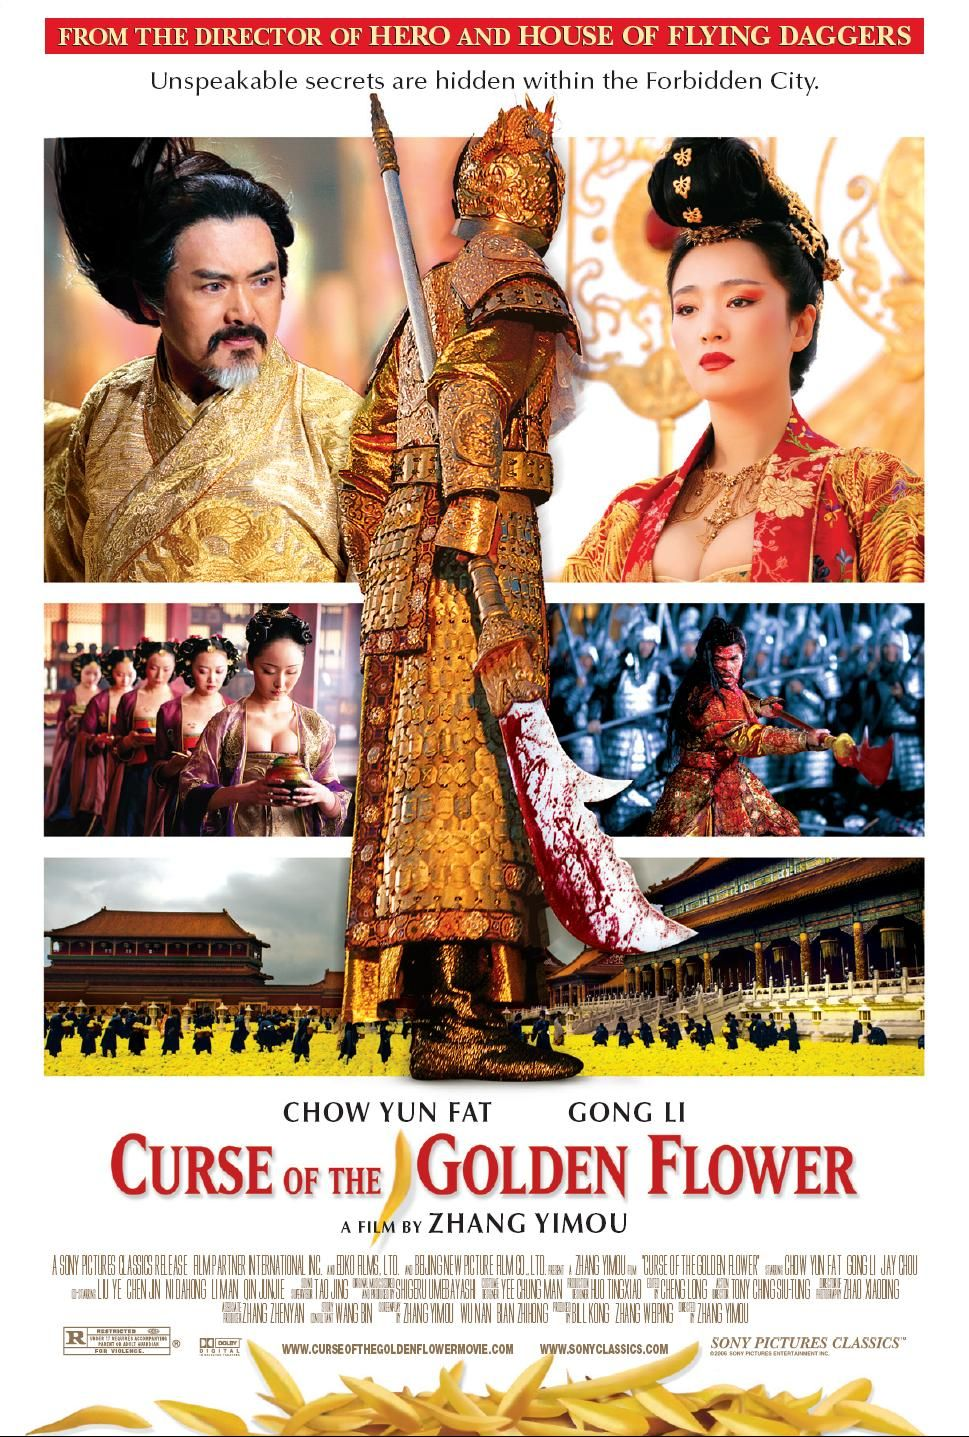 Curse of the Golden Flower (2007) directed by Zhang Yimou